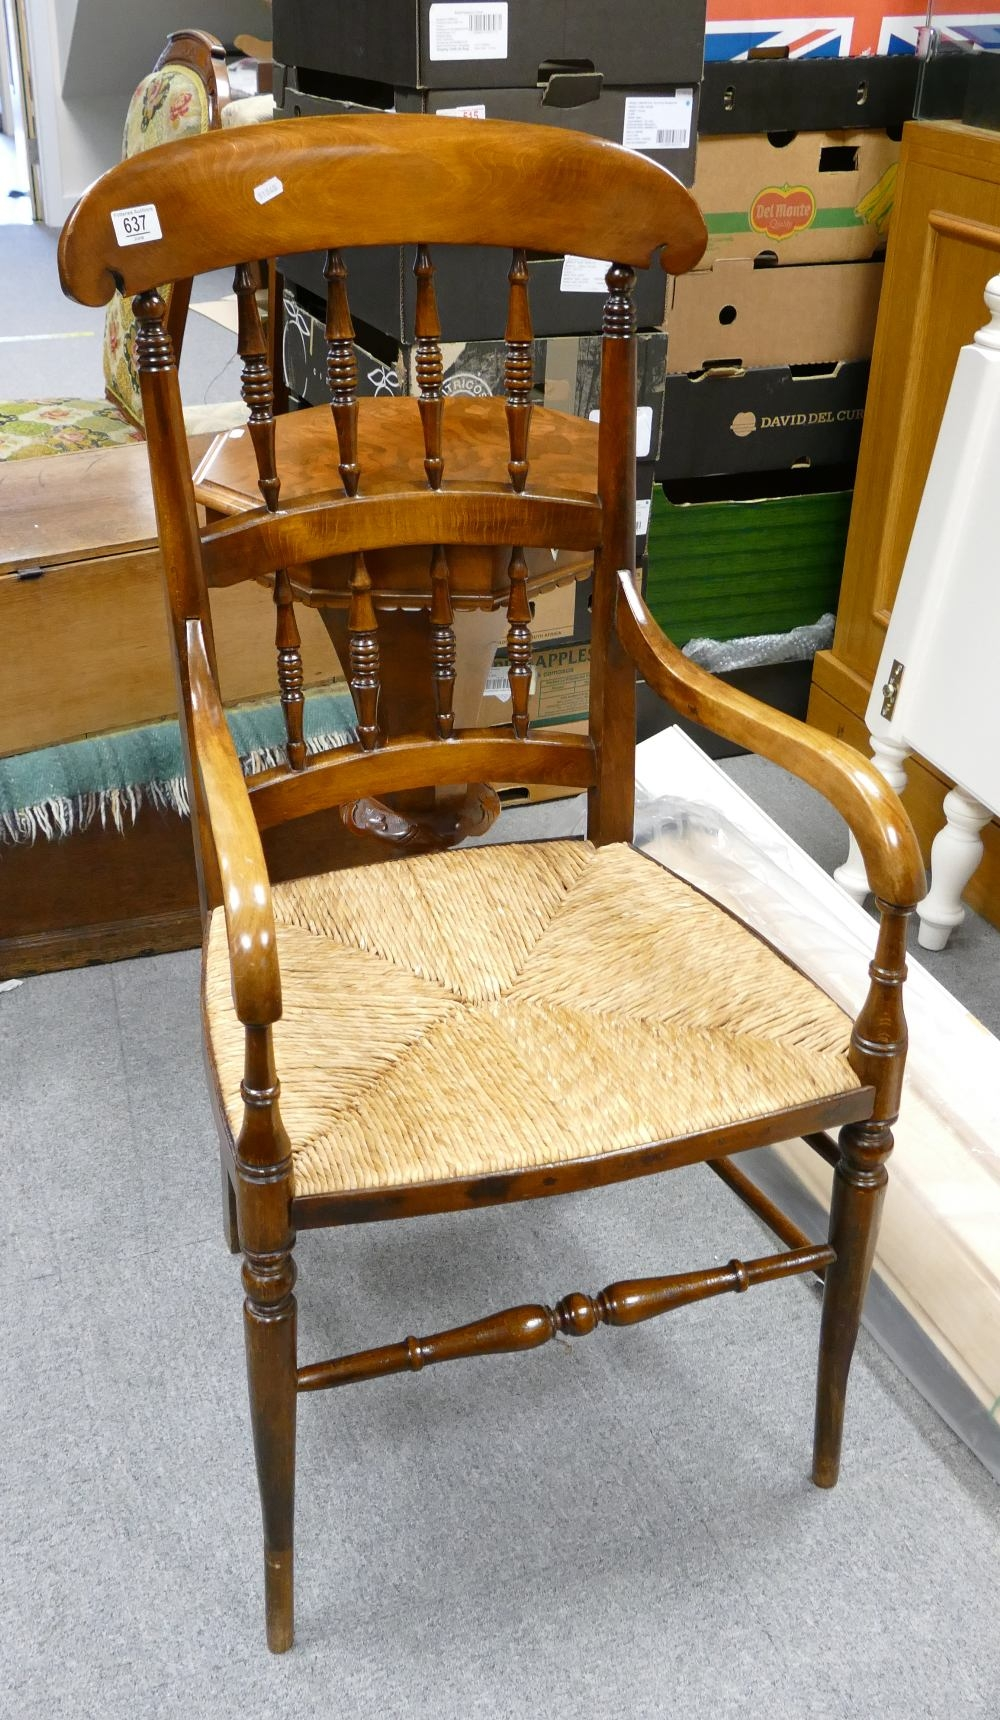 Larger size 19th century spindle back rush seated chair: